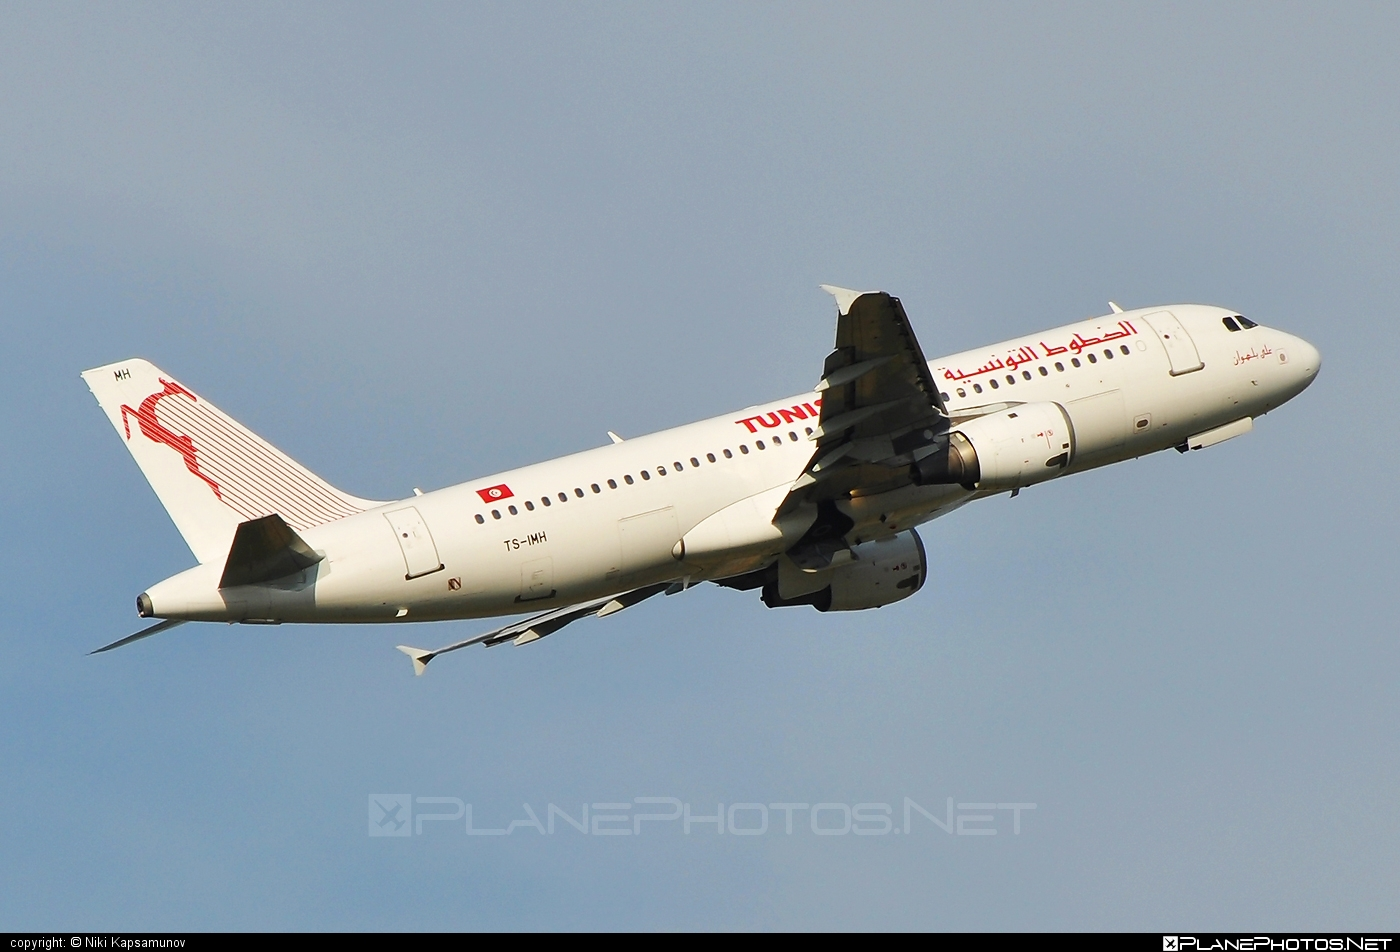 Airbus A320-211 - TS-IMH operated by Tunisair #a320 #a320family #airbus #airbus320 #tunisair